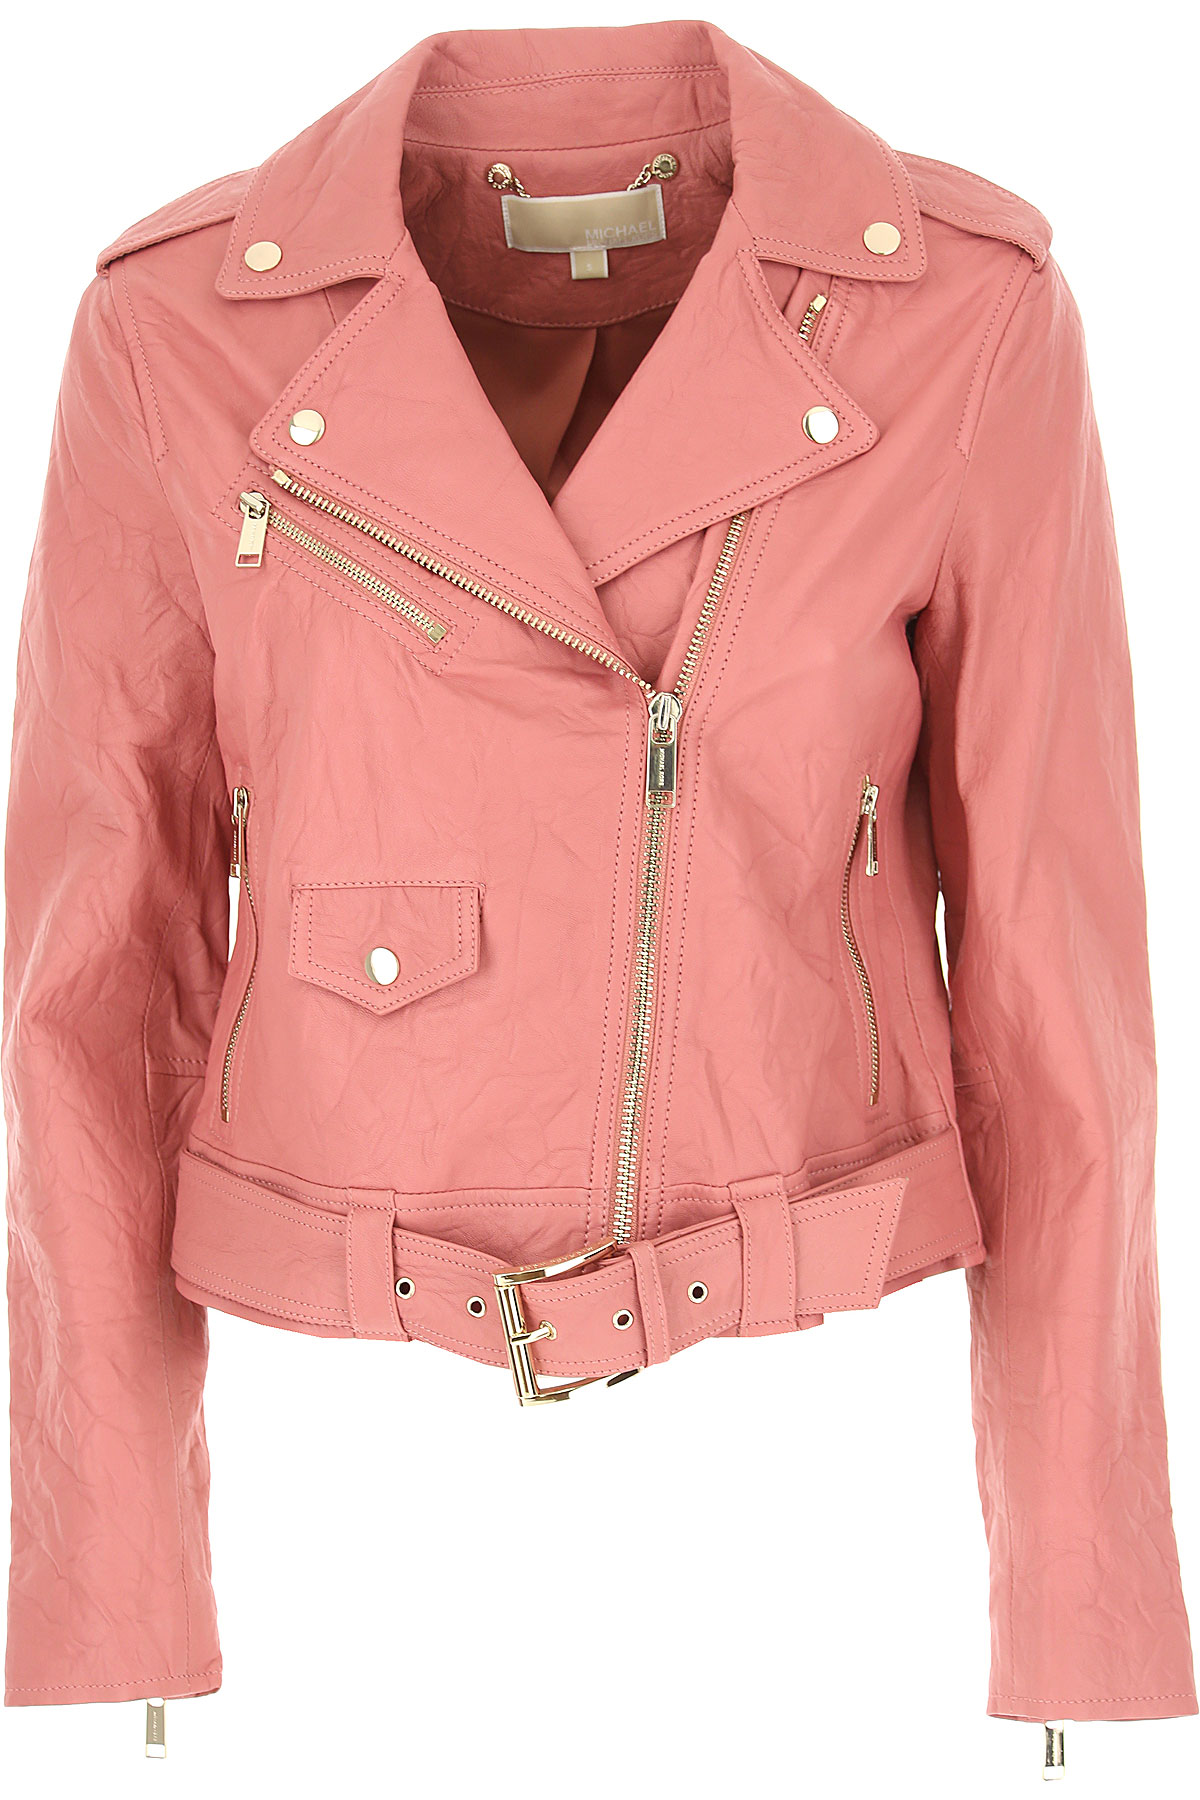 Michael Kors Leather Jacket for Women, Pale Pink, Leather, 2017, 2 4 6